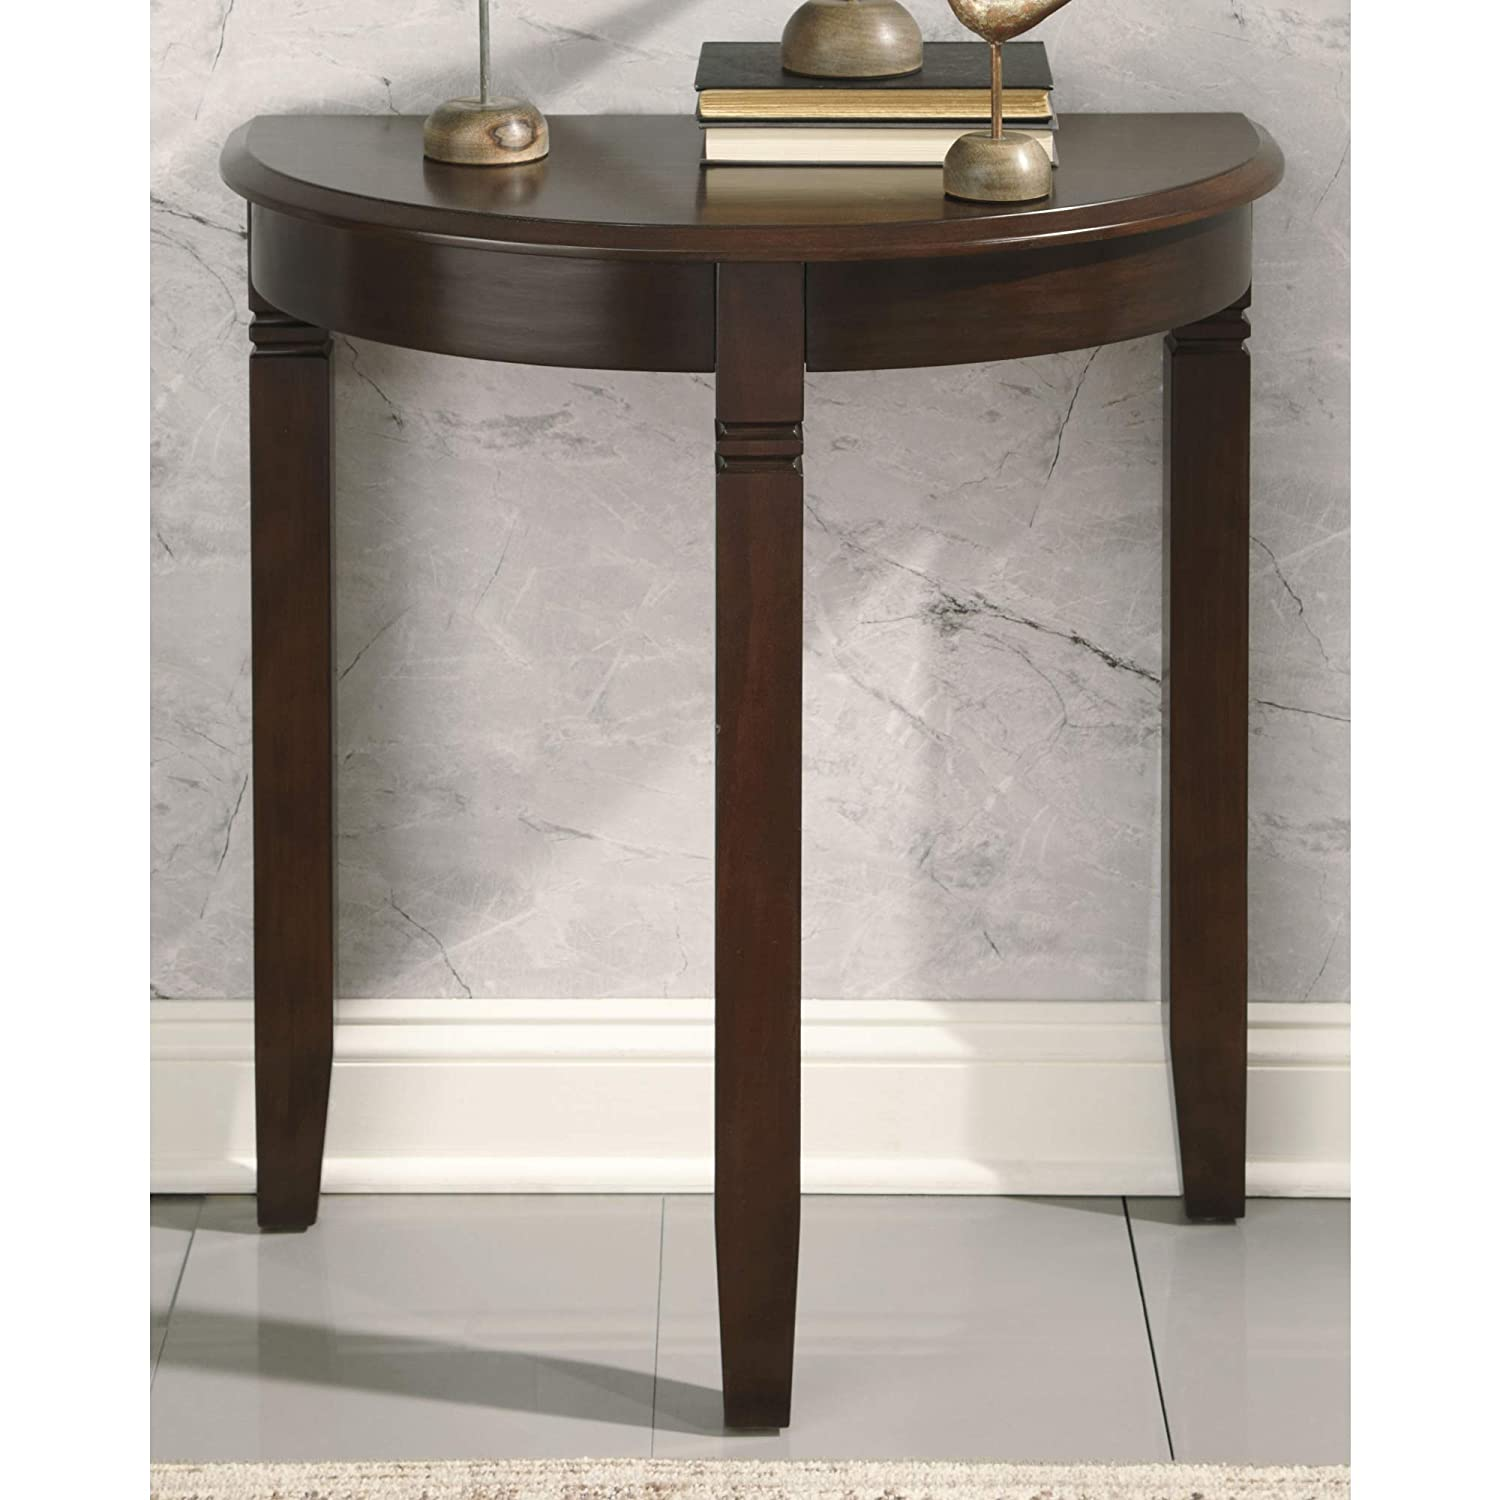 Ashley Furniture Signature Design Birchatta Console Table Moon-Shaped Distressed Antiqued White Finish A4000055